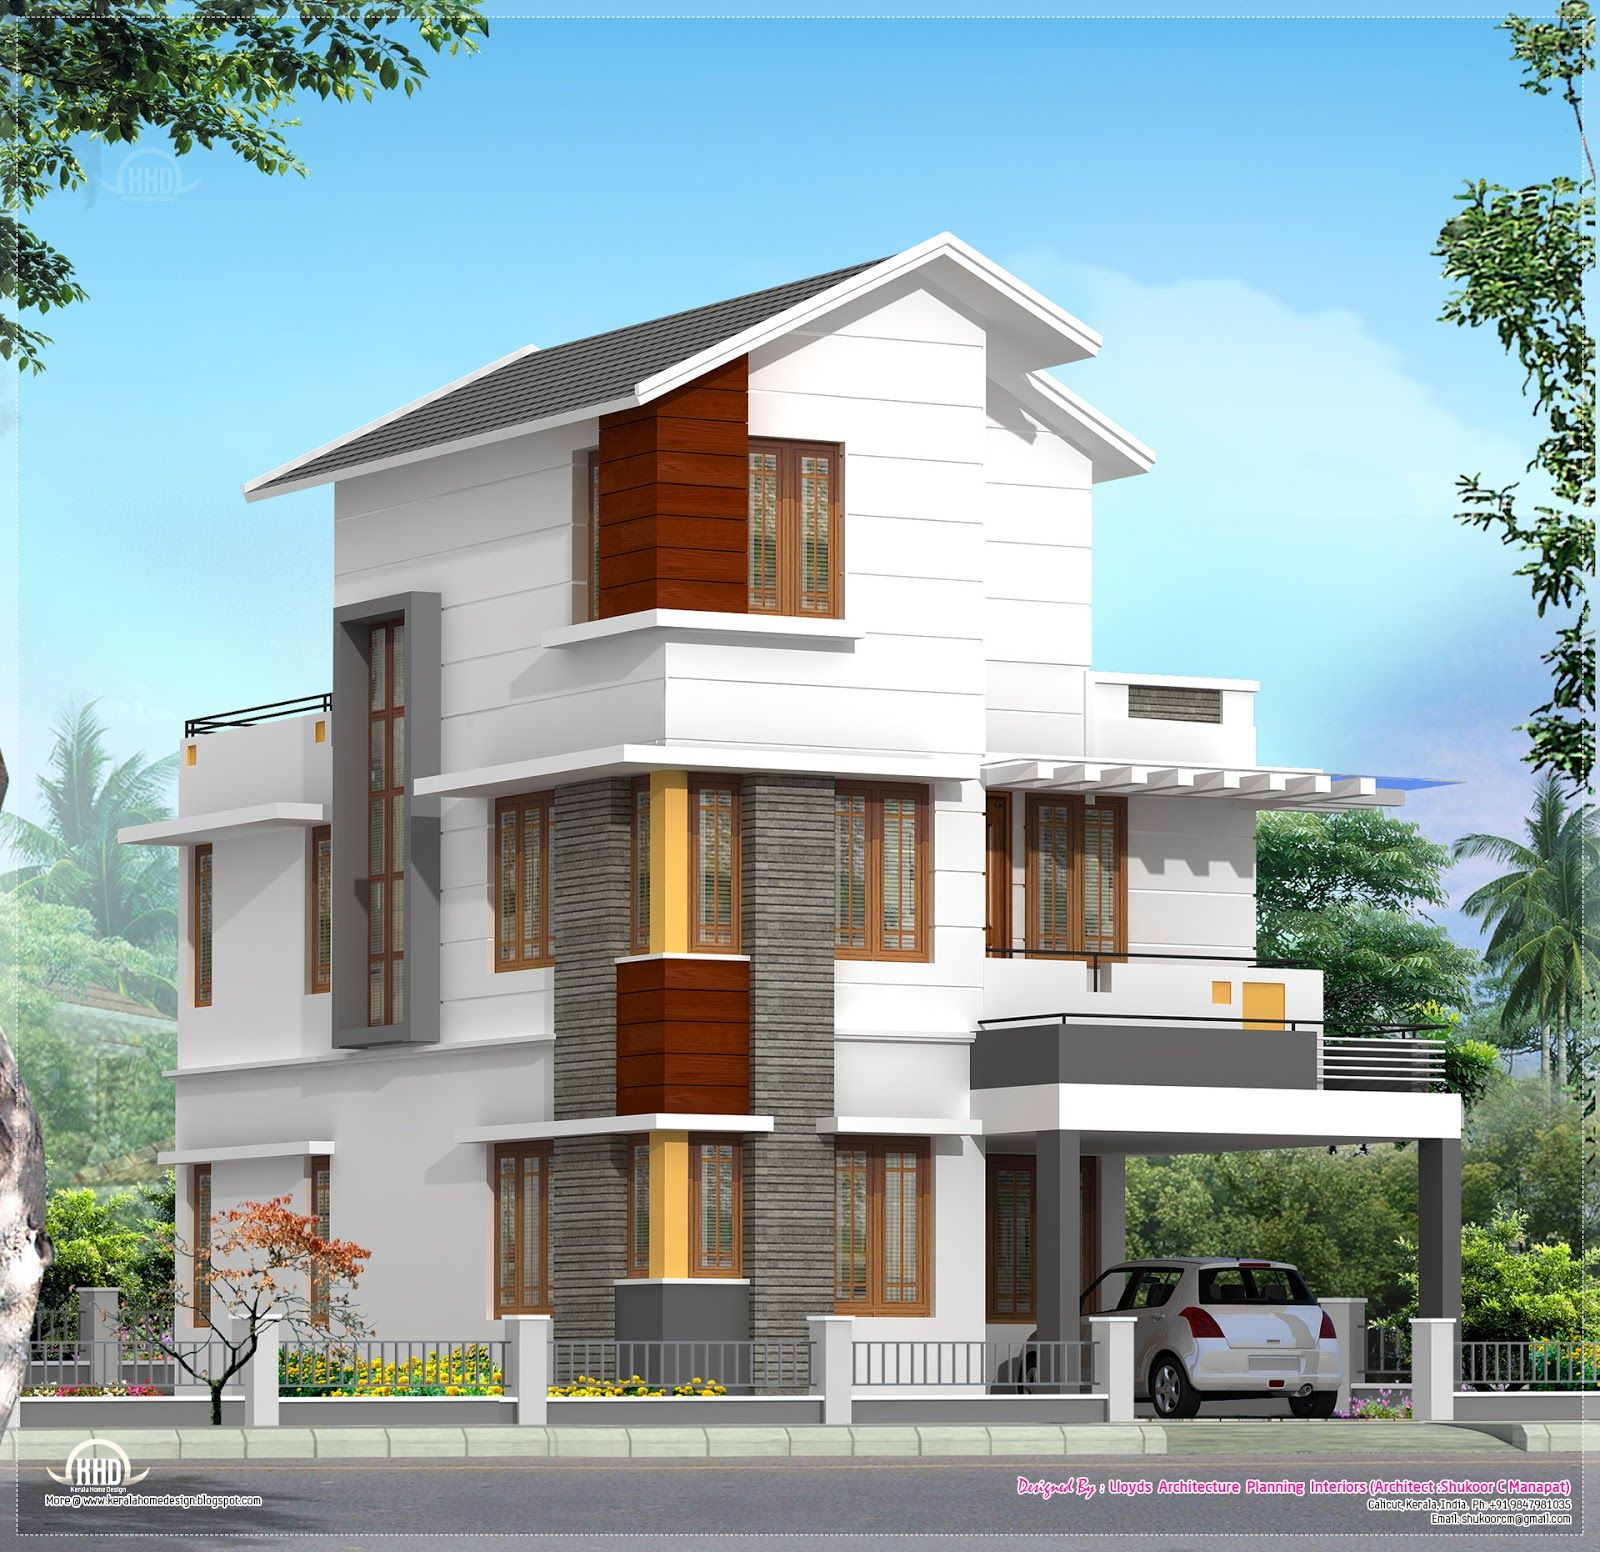 4 bedroom house plan in less than 3 cents in 2019 | Architecture | House plans, House design ...